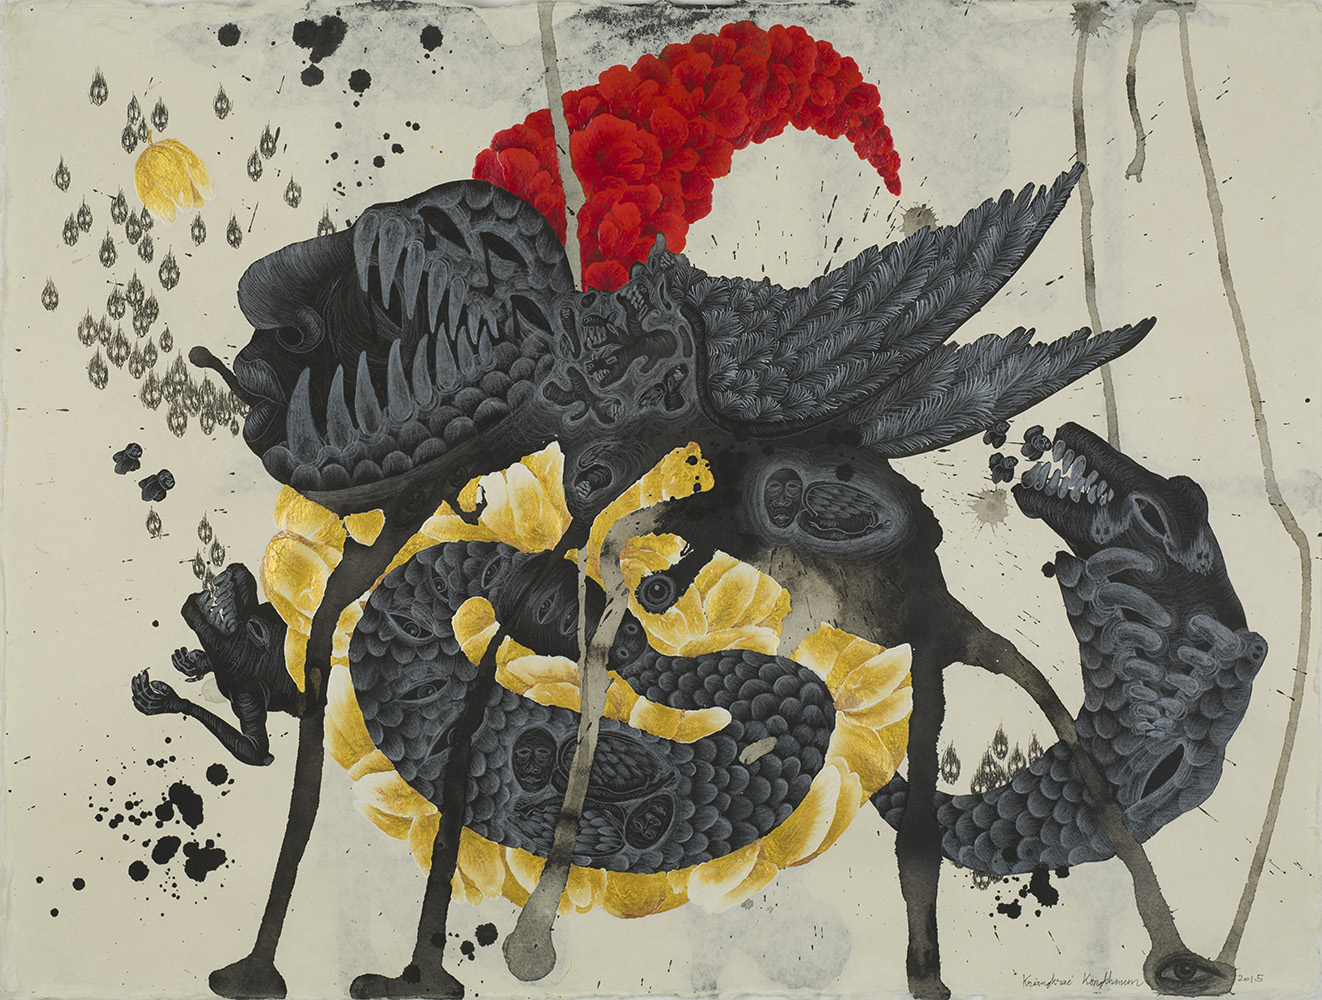 Kriangkrai Kongkhanun    The Golden Flower, Chapter 3 Snake Swallowing Tail  , 2015 Chinese ink, pen, pencil on Thai handmade paper 23.5 x 31.5 inches 59.7 x 80 cm KrK 11